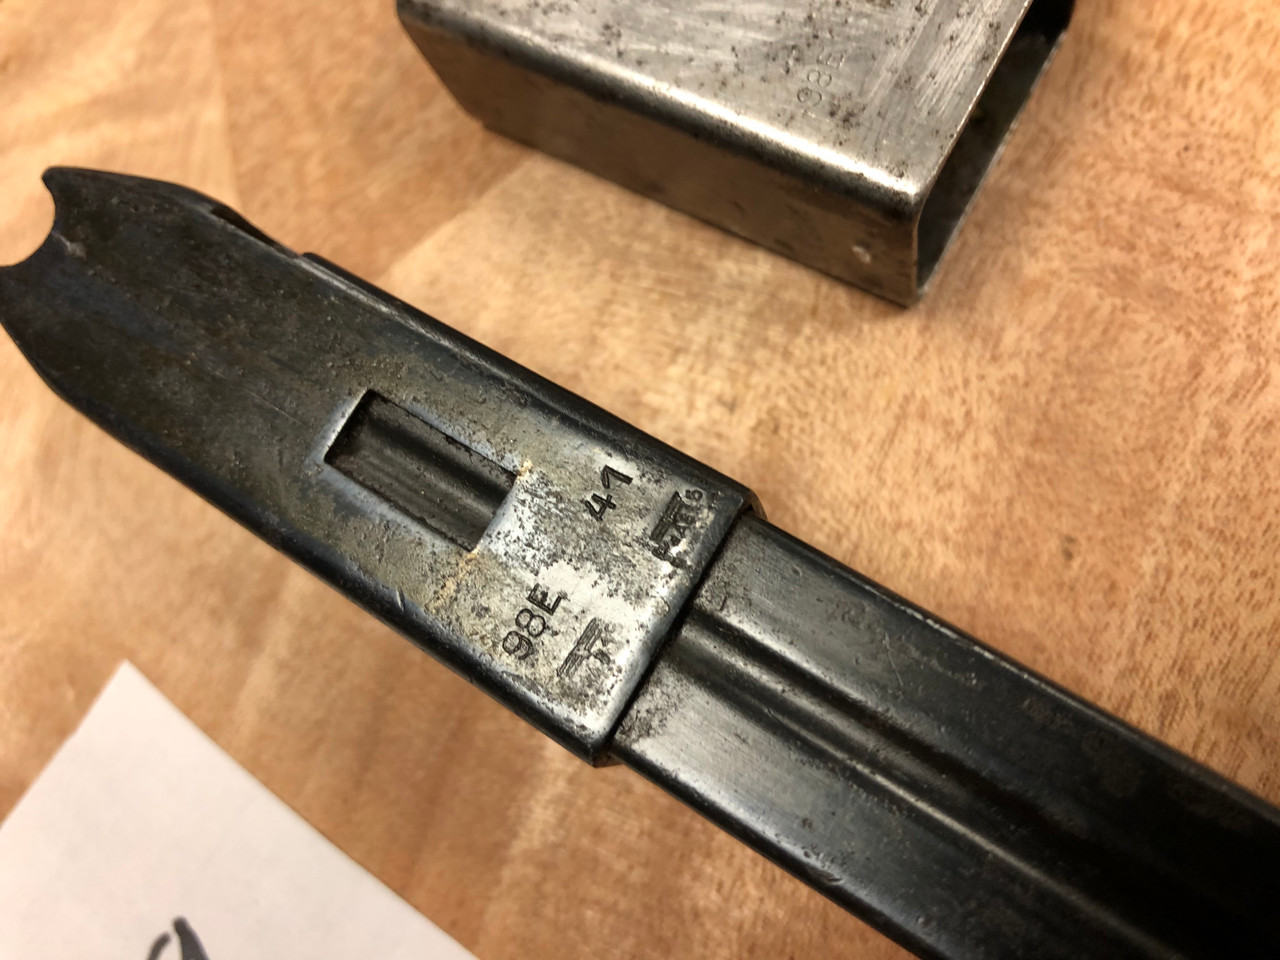 MP40 Early Magazine and Loader lot - Steyr Marking  (lot 200728-09)